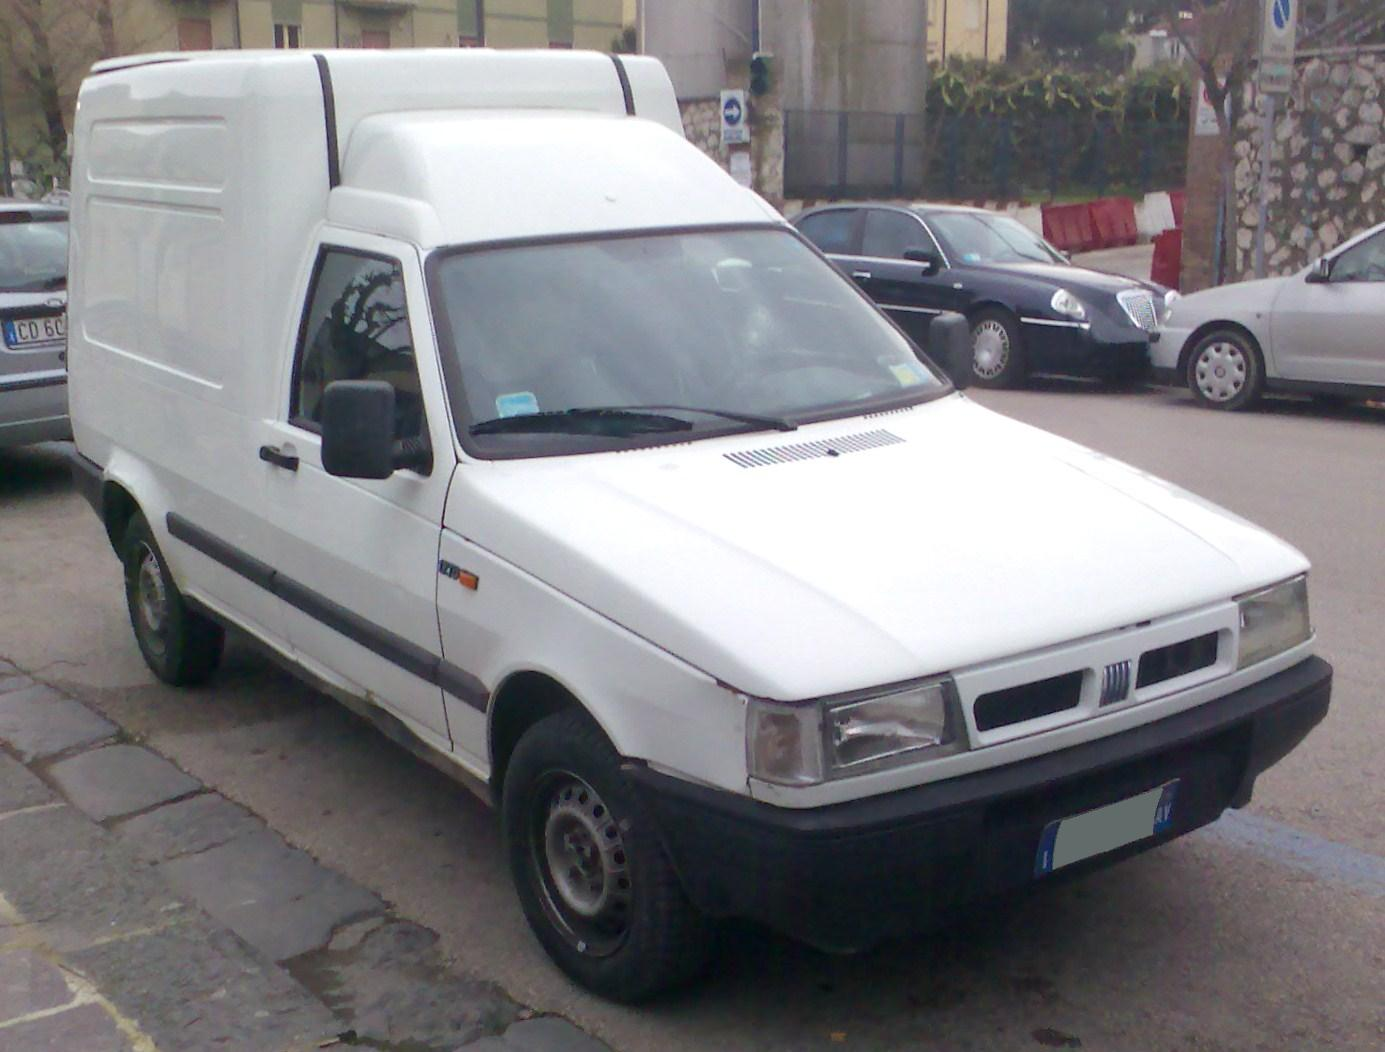 Fiat Fiorino 1993 photo - 1